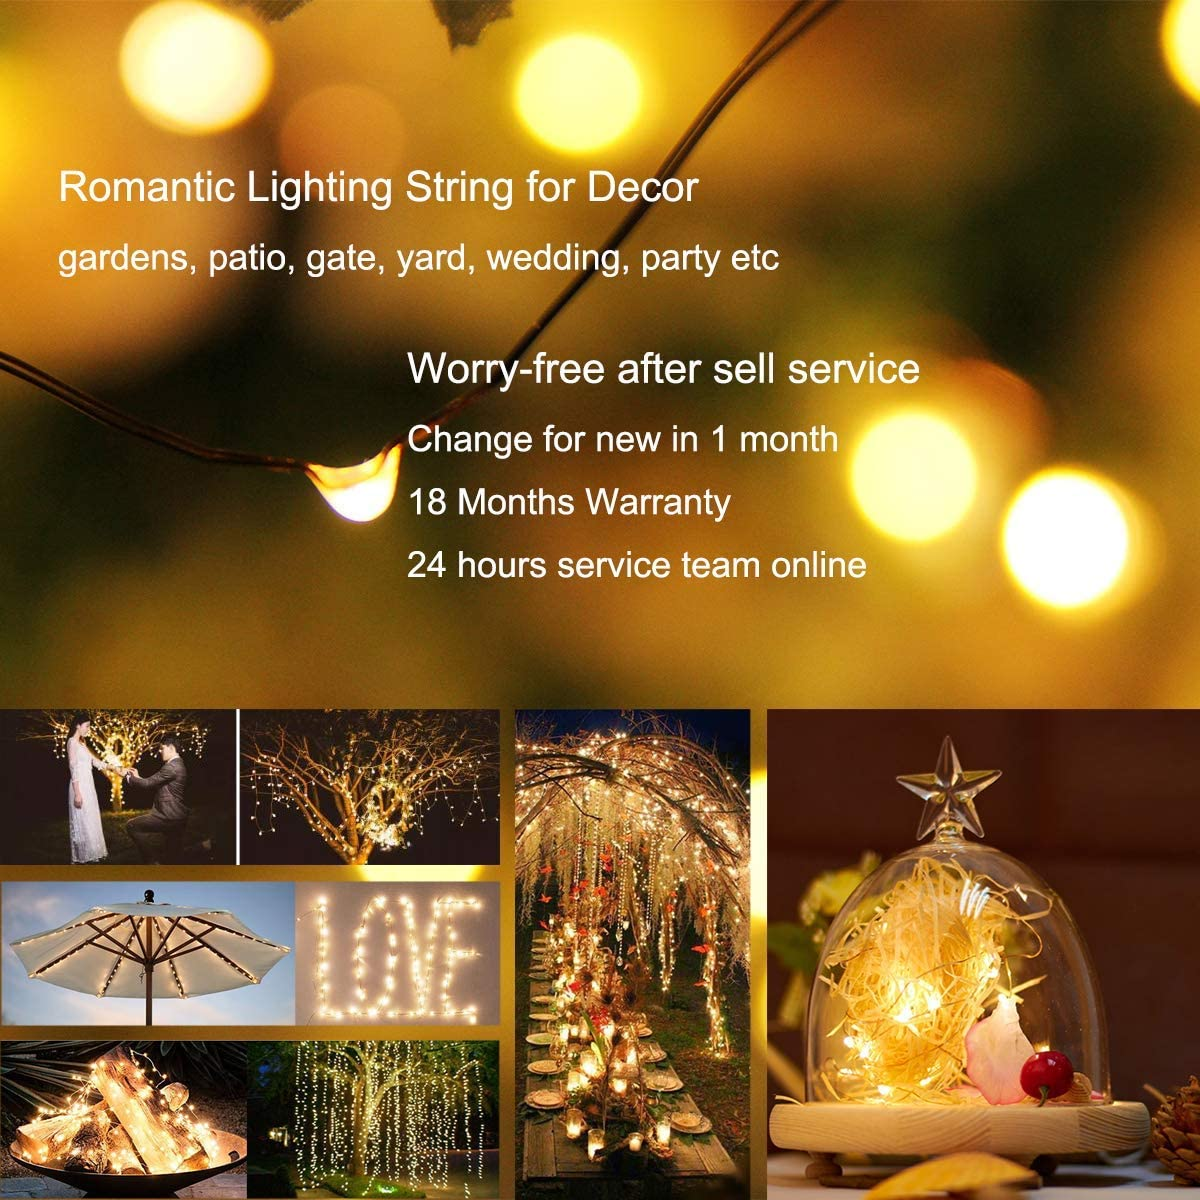 H7b70186ffd924501aaa232a3e09eed17T - Led Outdoor Solar String Lights Fairy Holiday Christmas For Christmas, Lawn, Garden, Wedding, Party and Holiday(1/2Pack)